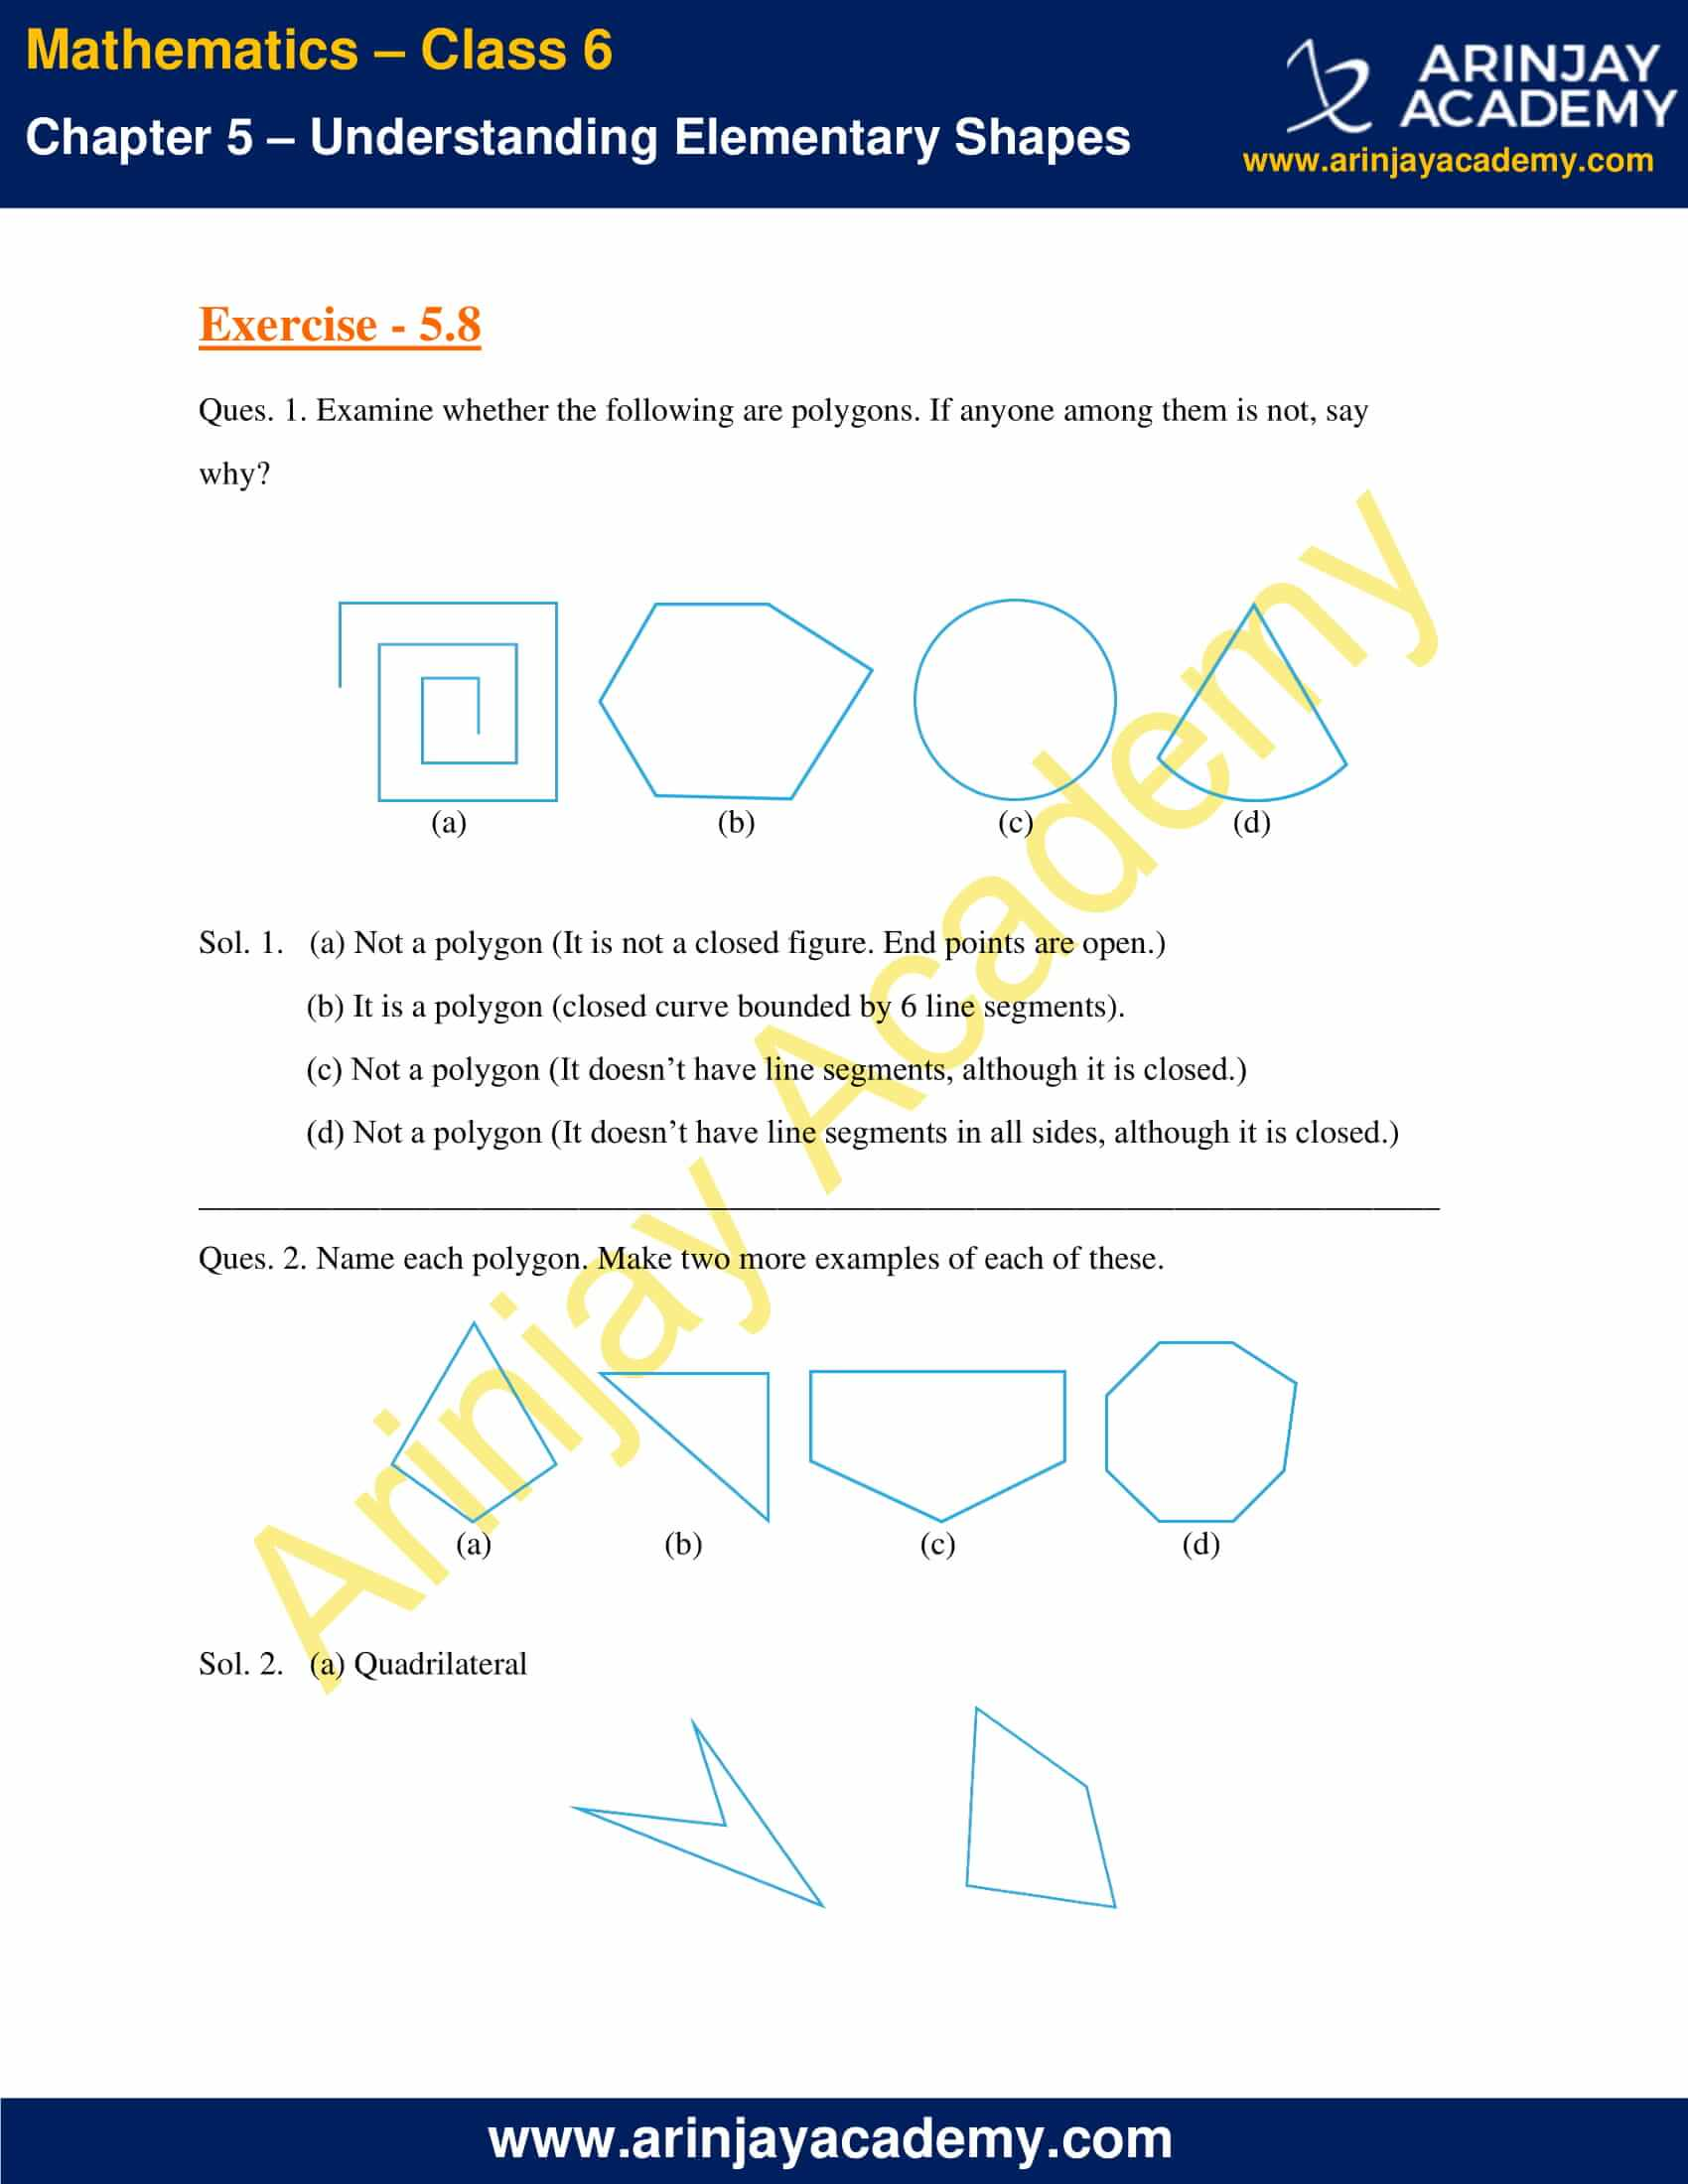 NCERT Solutions for Class 6 Maths Chapter 5 Exercise 5.8 image 1